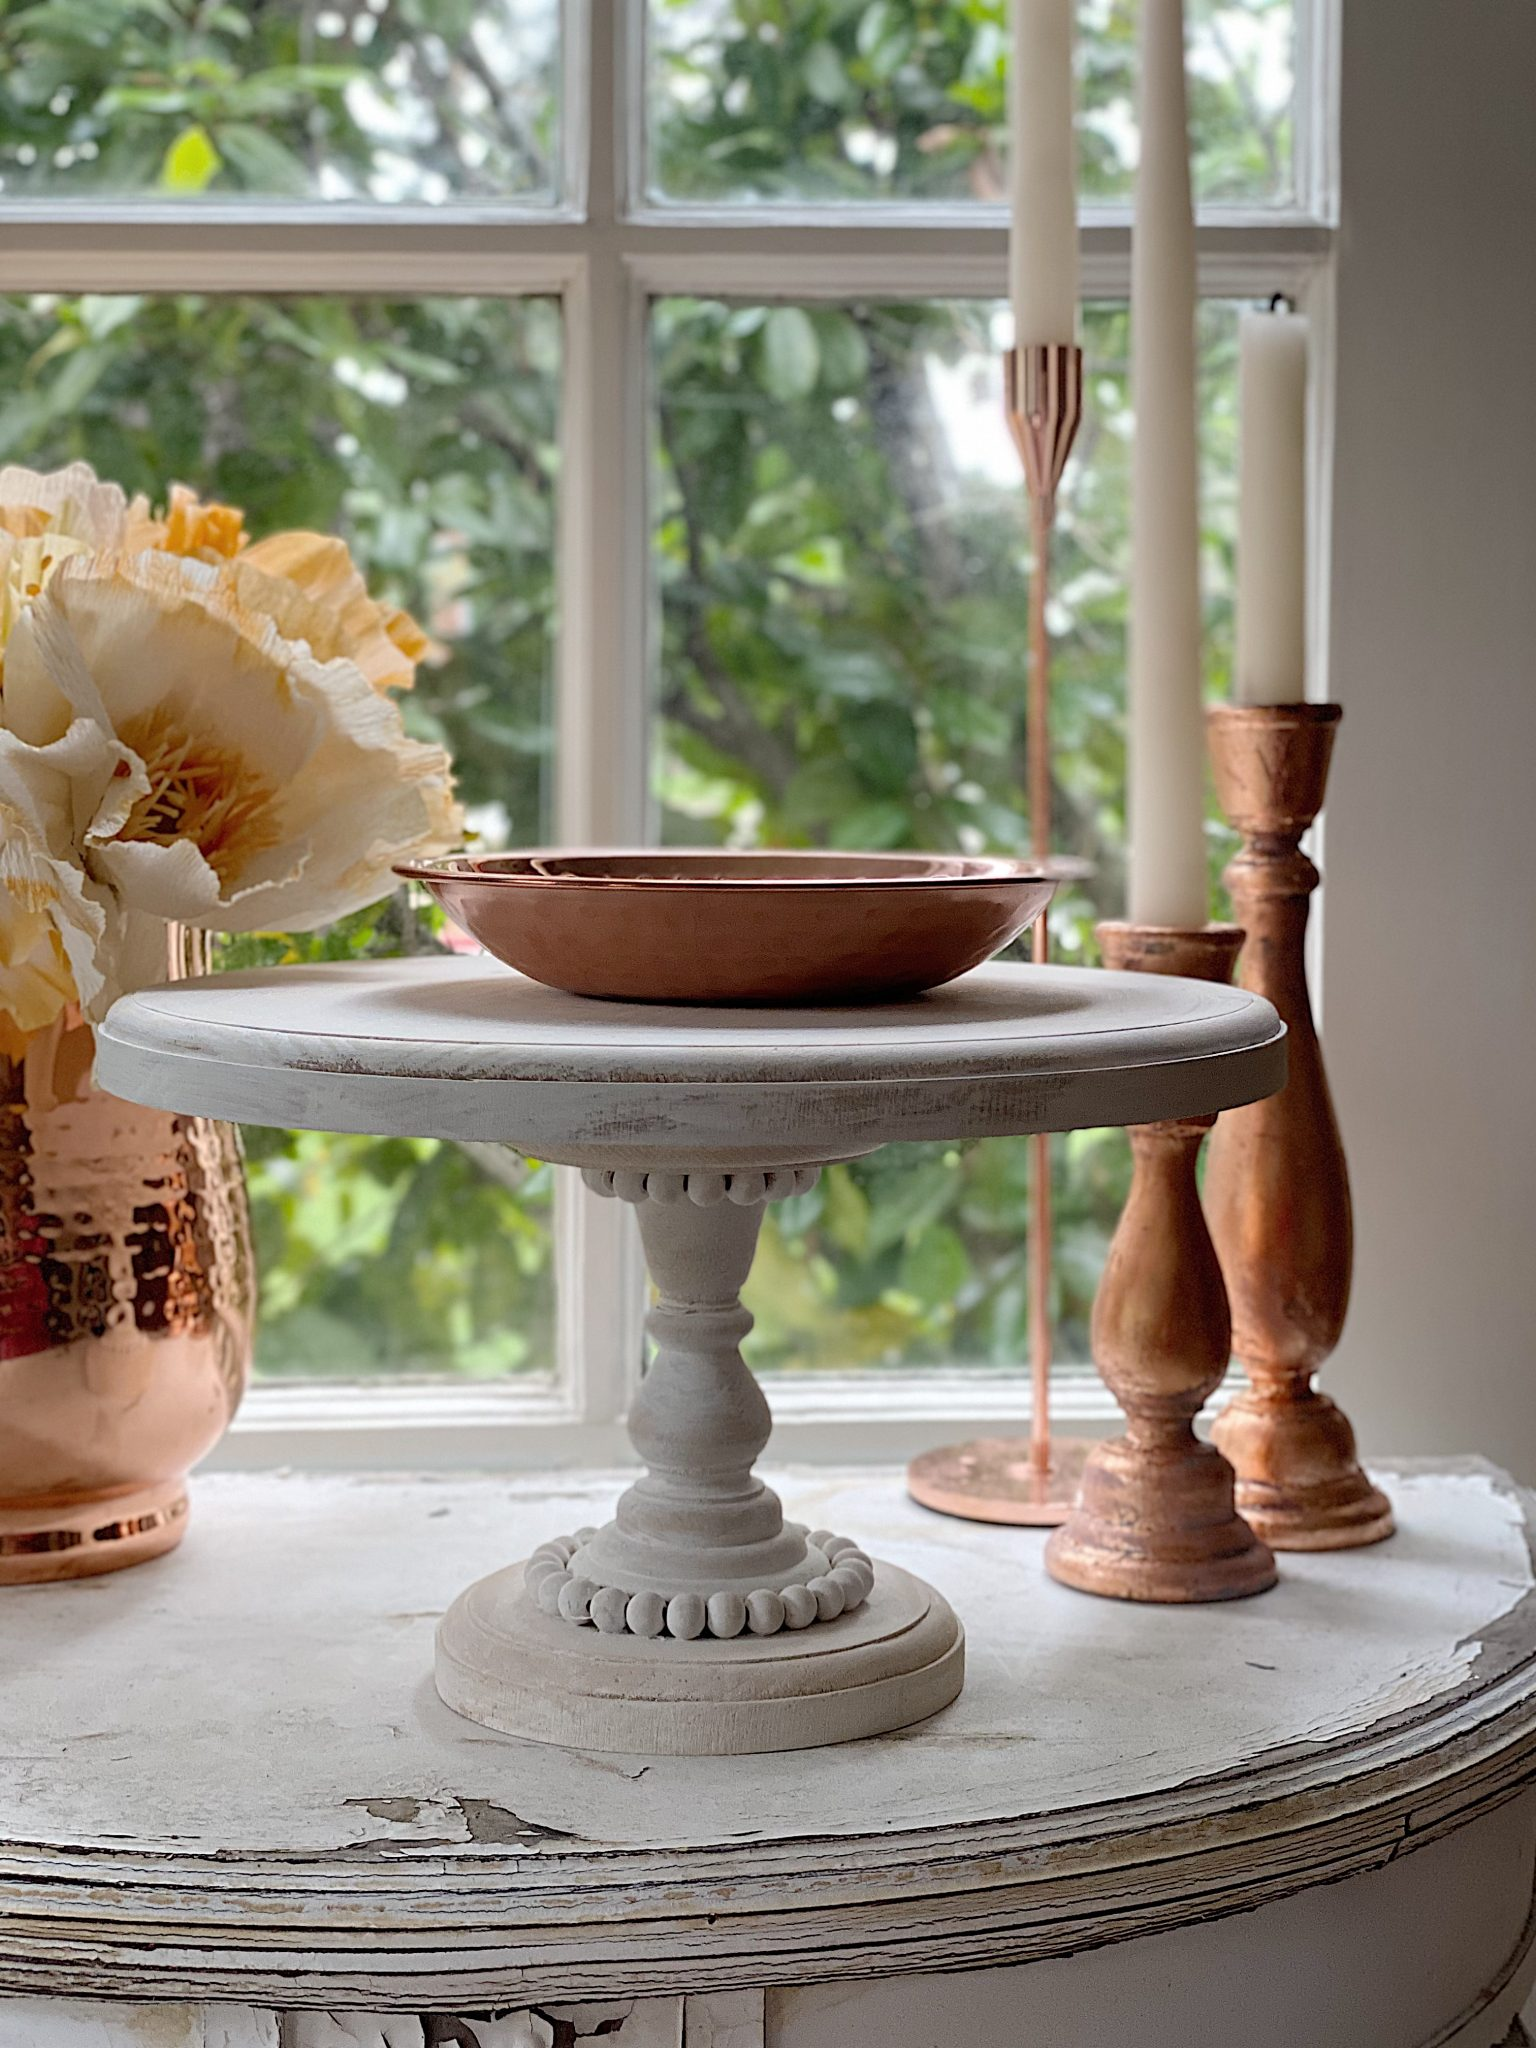 How to Make a Wood Cake Stand DIY by My 100 Year Old Home